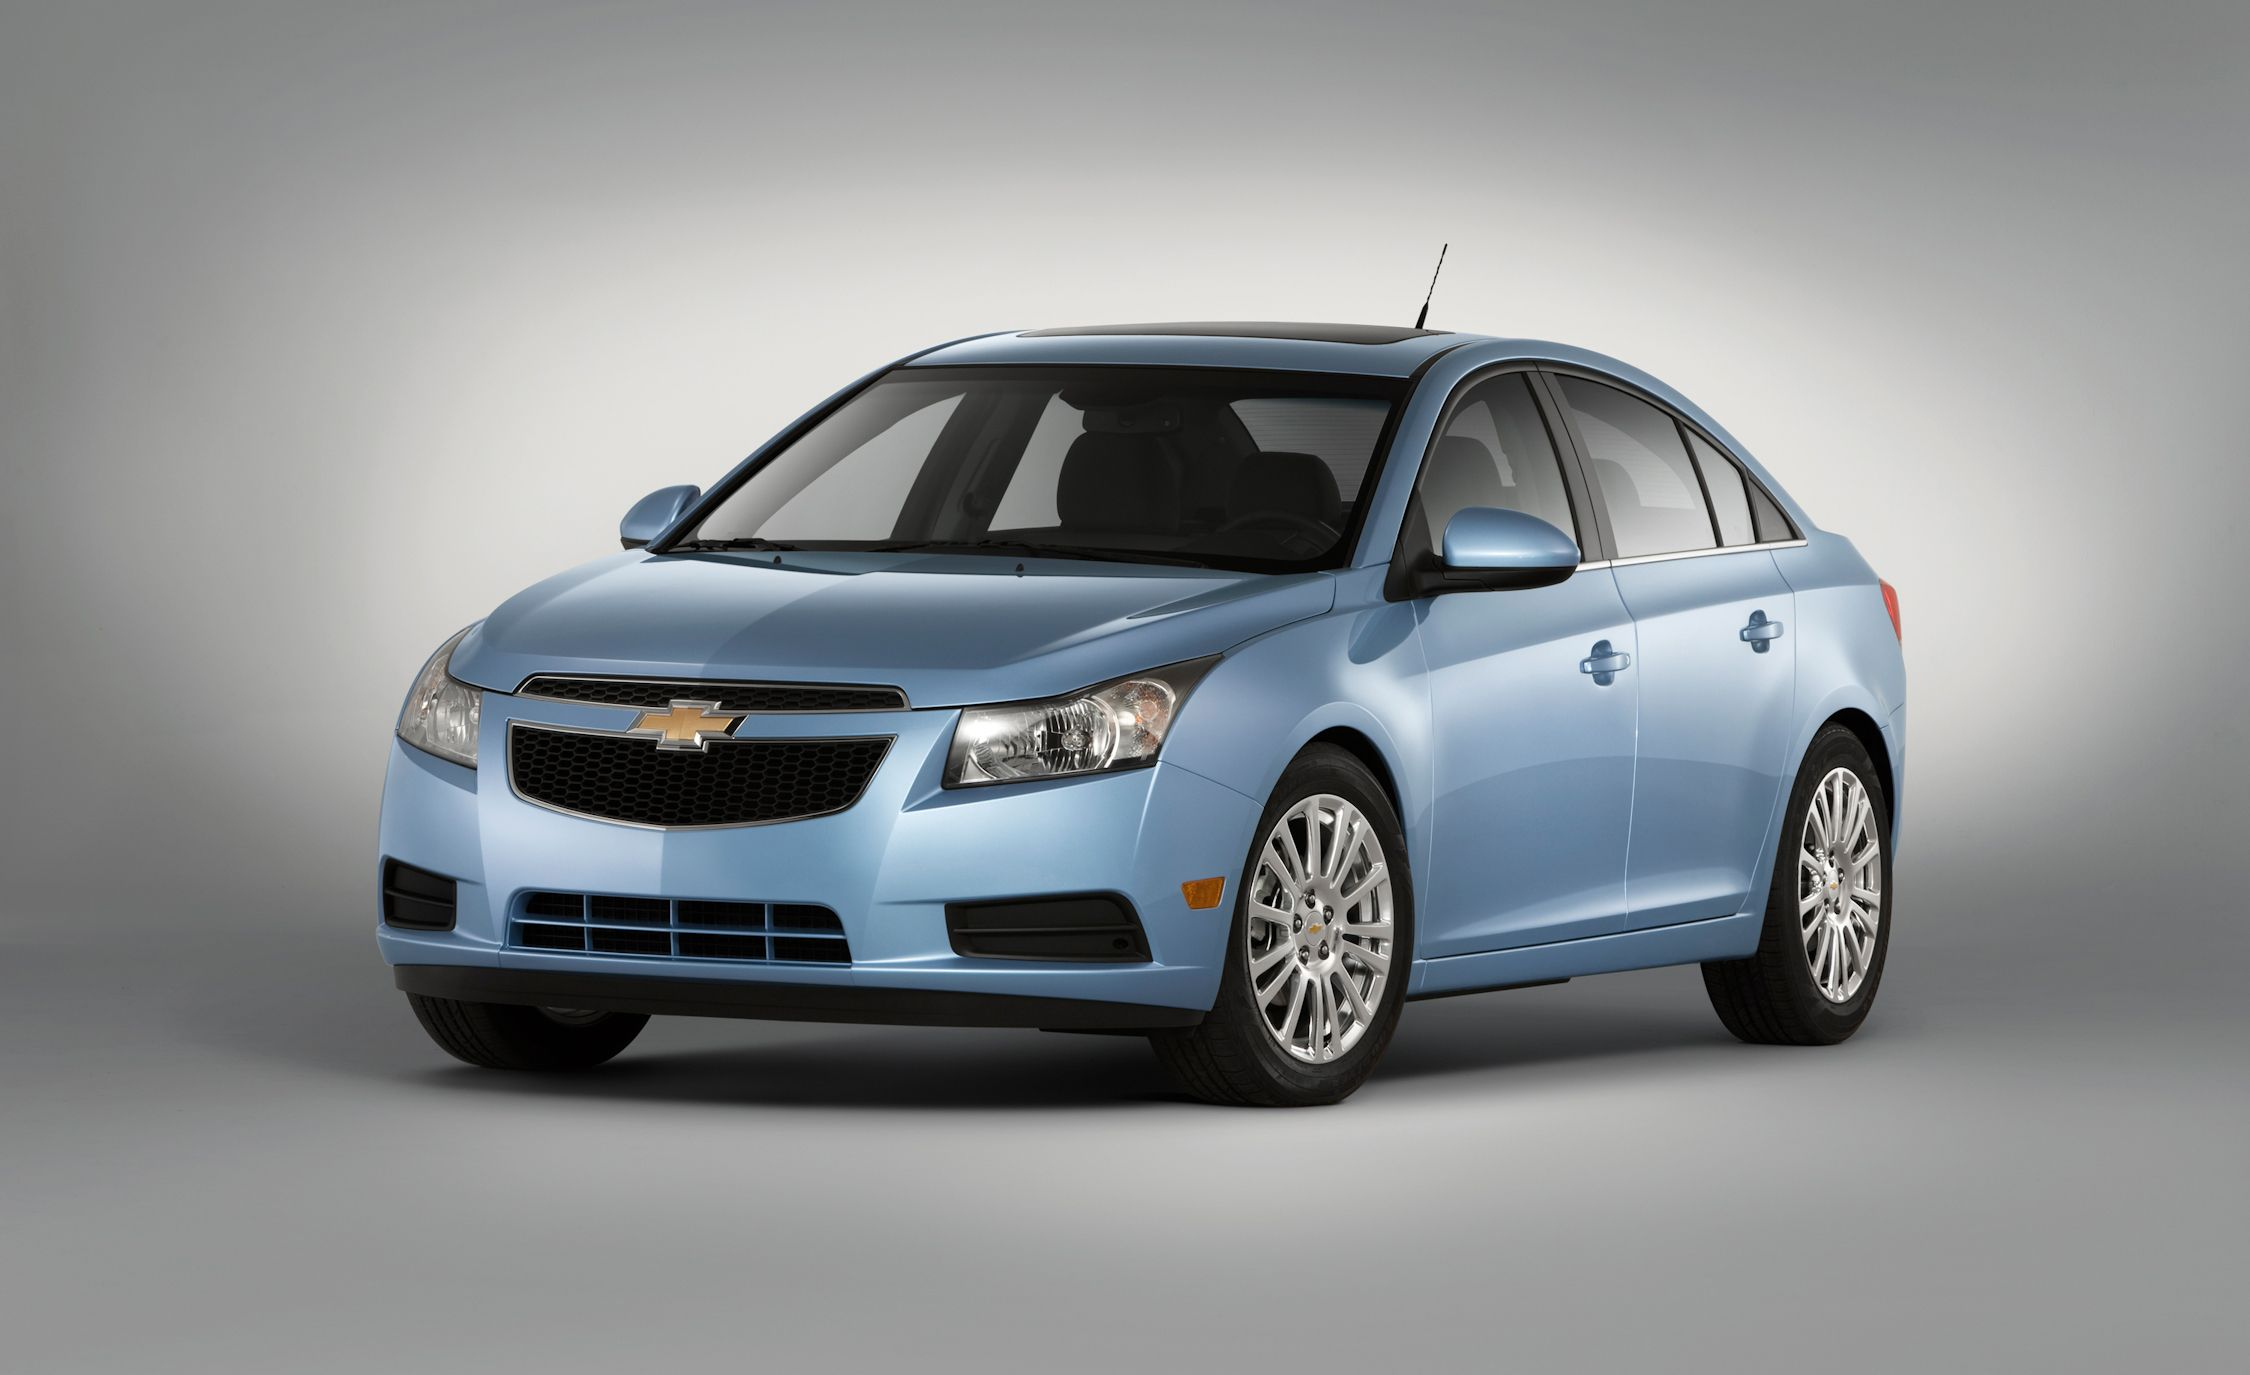 Image result for 2011 chevy cruze